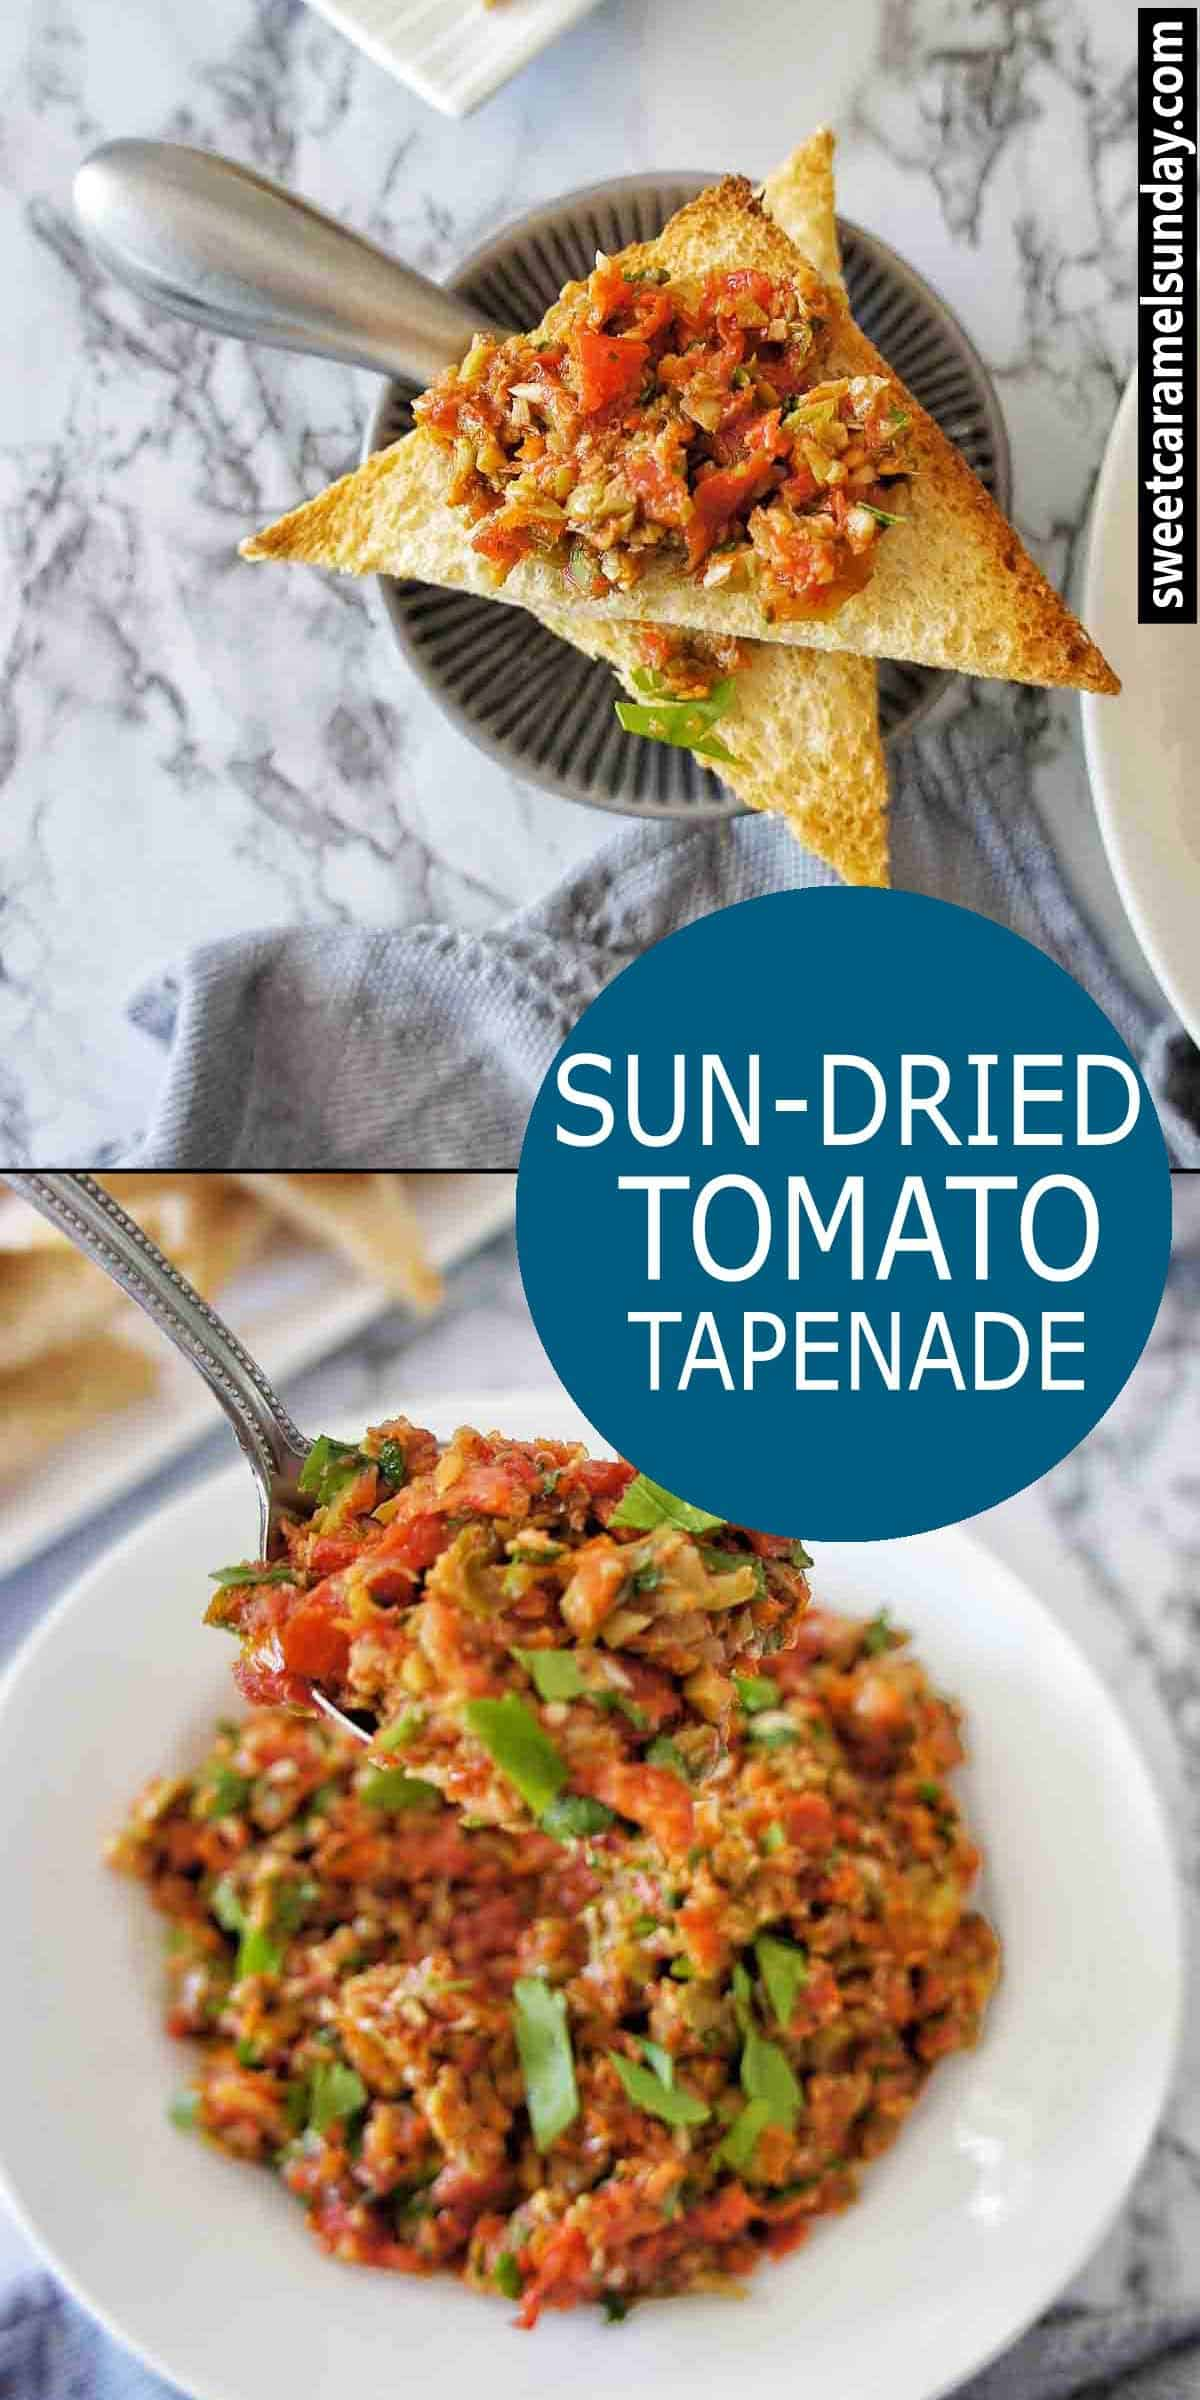 Sun-Dried Tomato Tapenade with text overlay